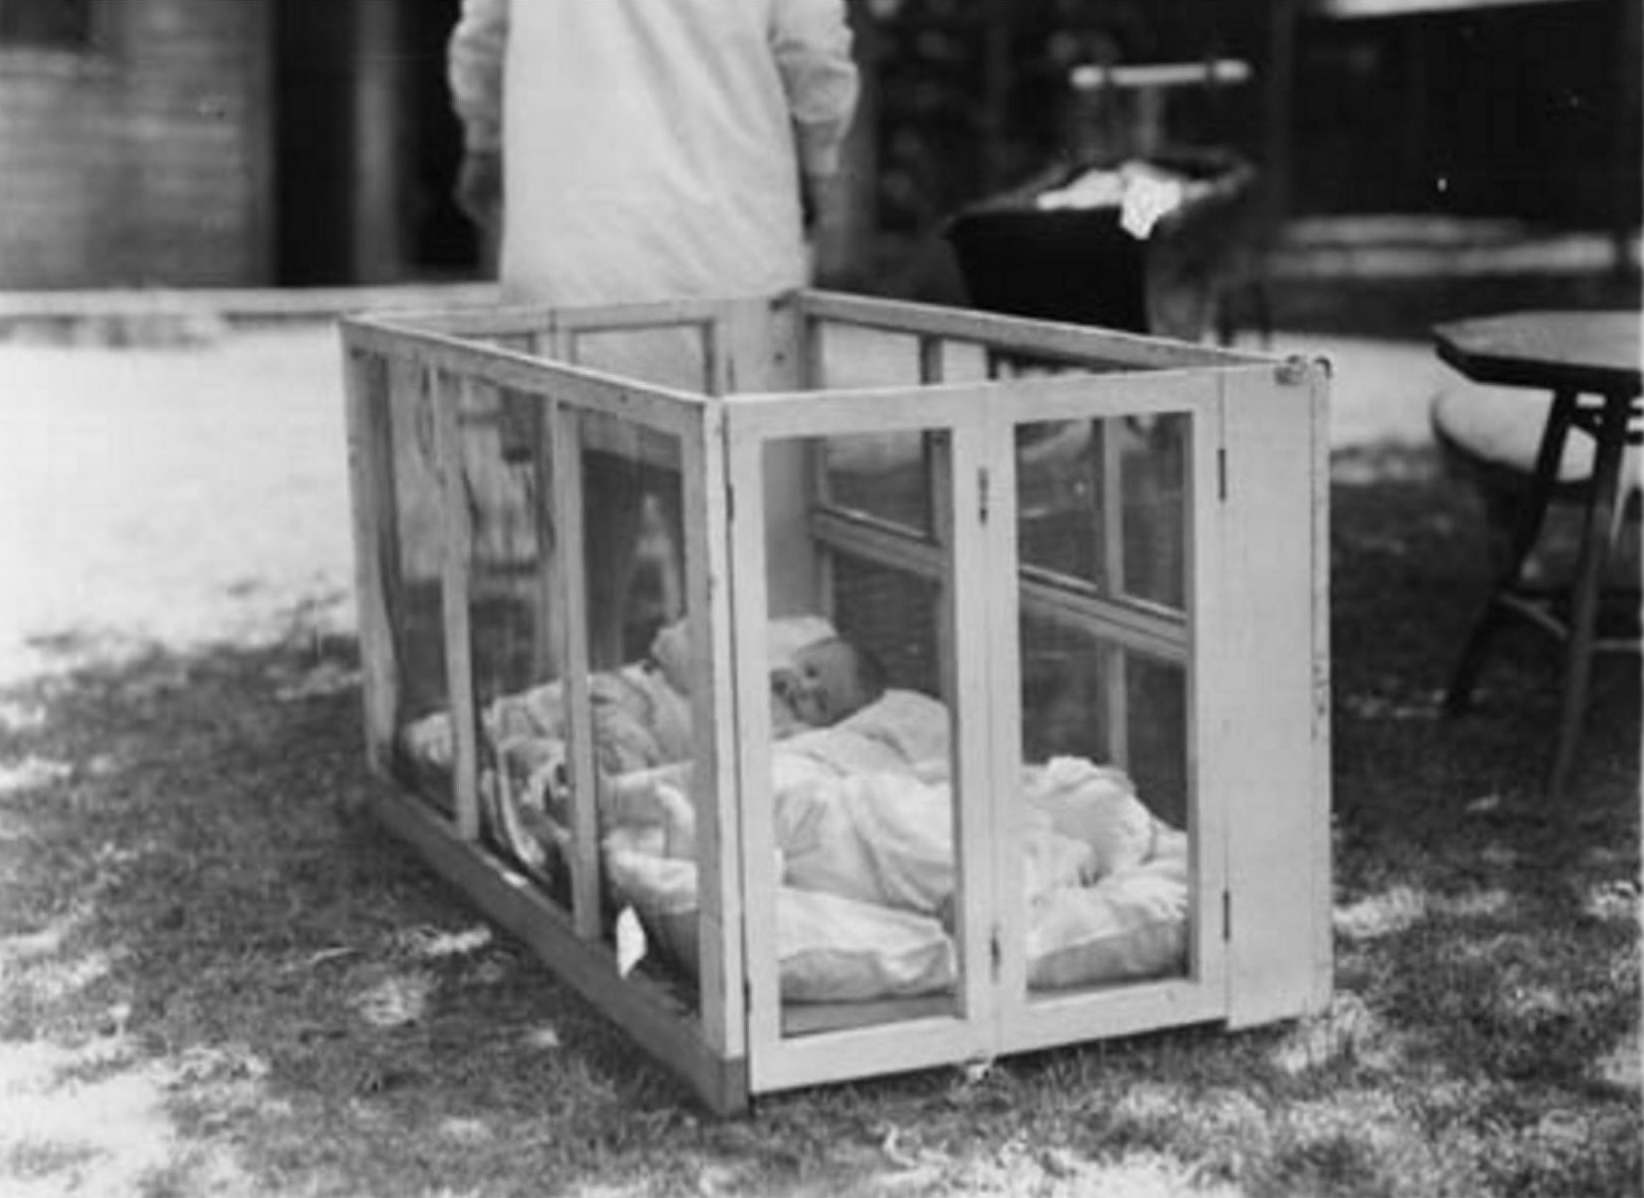 1915-The Gables Summer Camp-Baby in crib